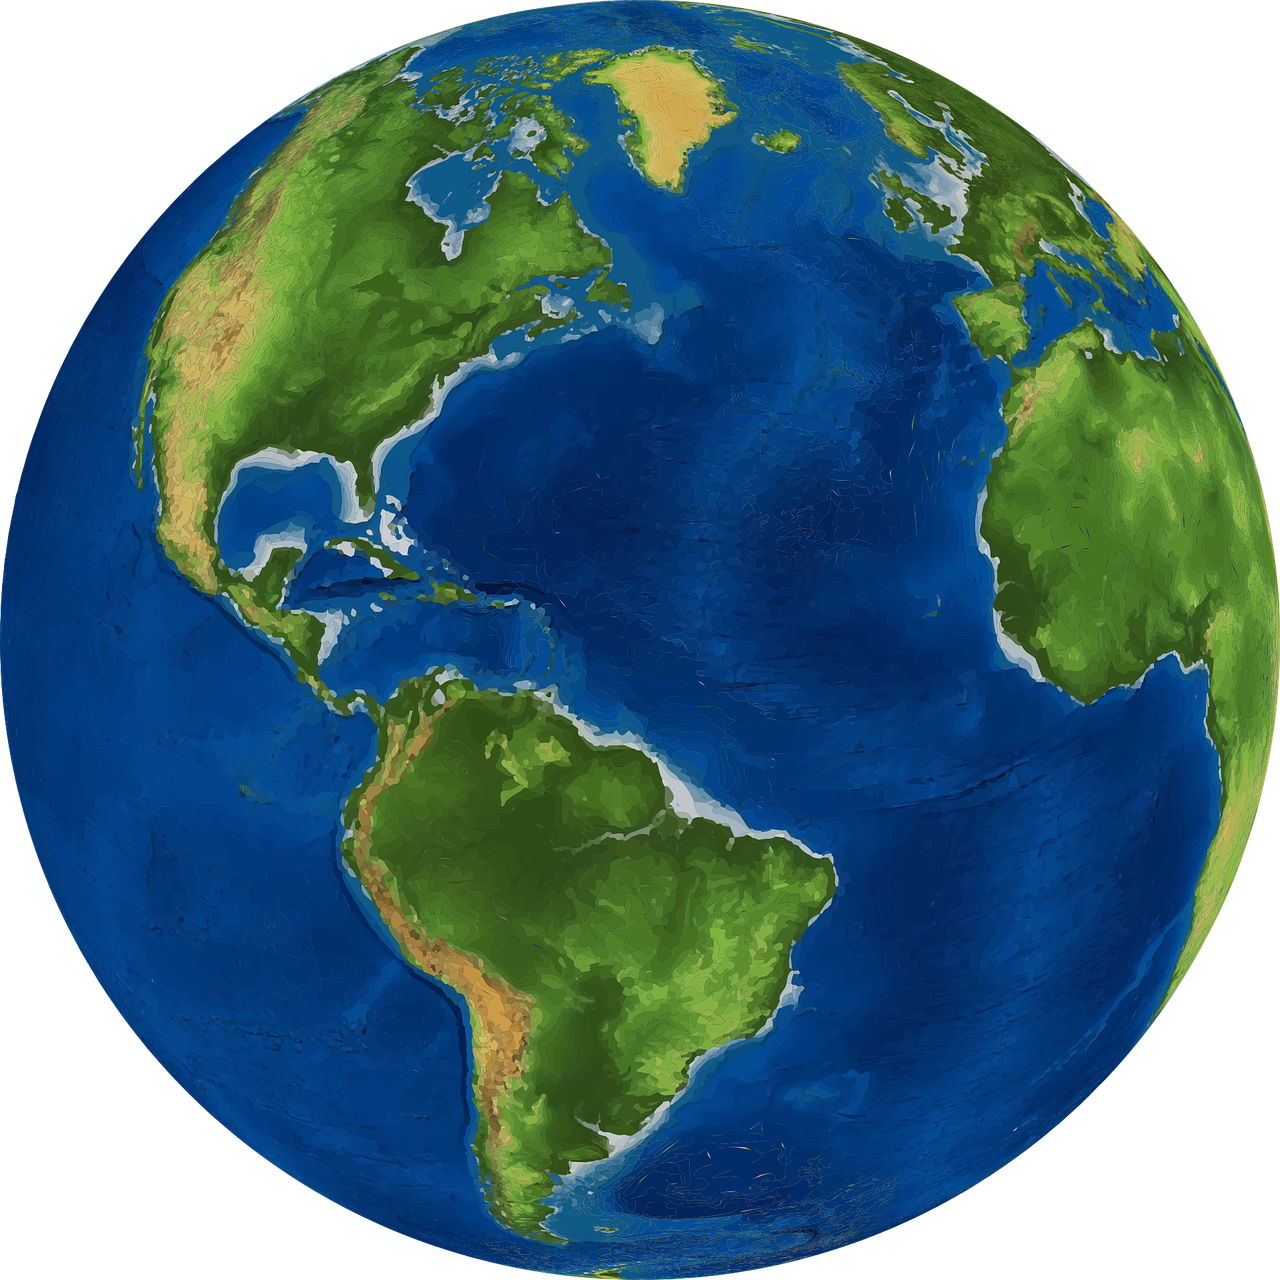 exploring the special characteristics of planet earth Special characteristics of earth essay examples 1,790 total results exploring the special characteristics of planet earth 4,296 words a description of planet.